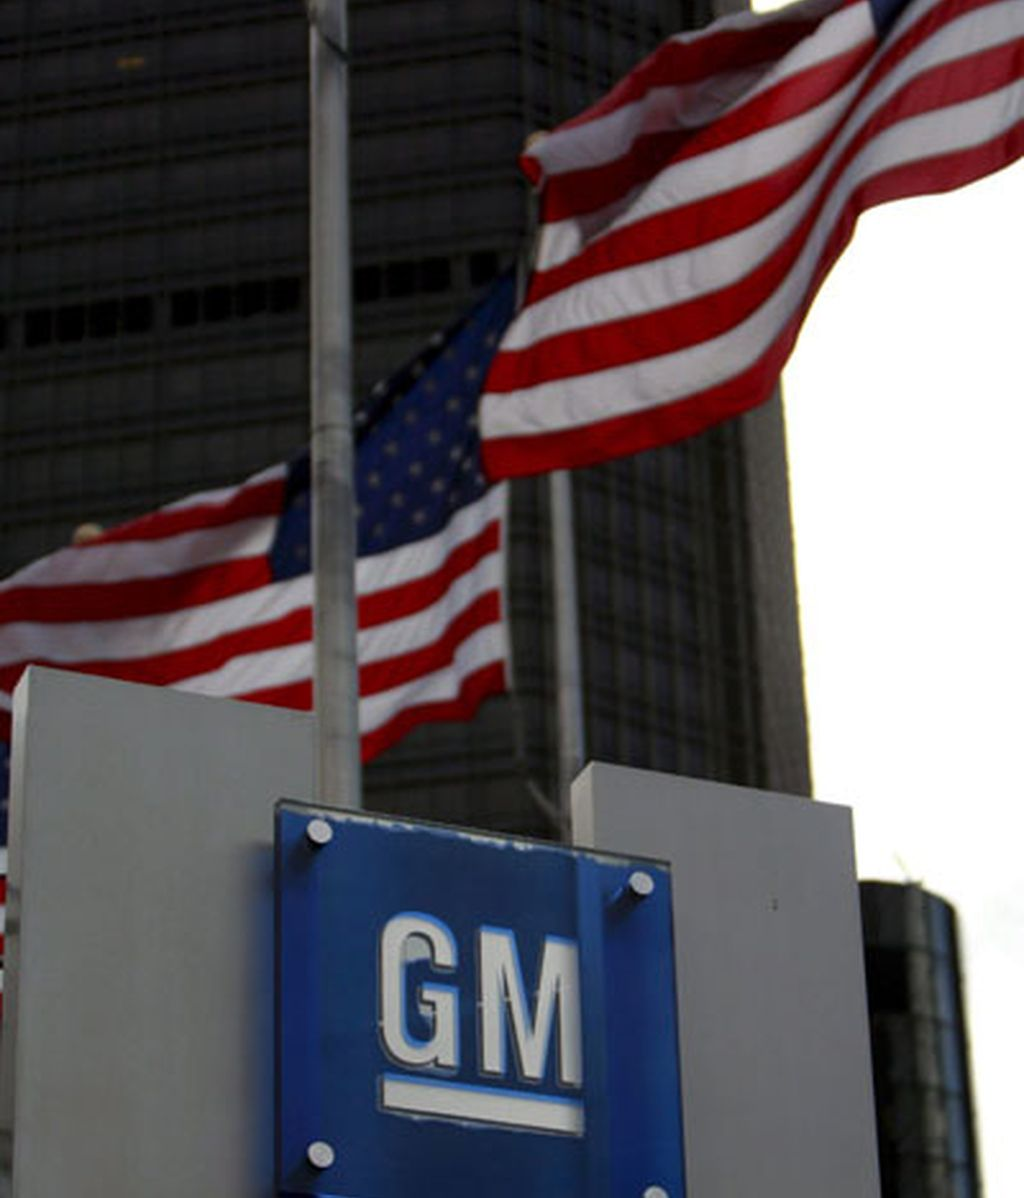 GENERAL MOTORS, EN QUIEBRA